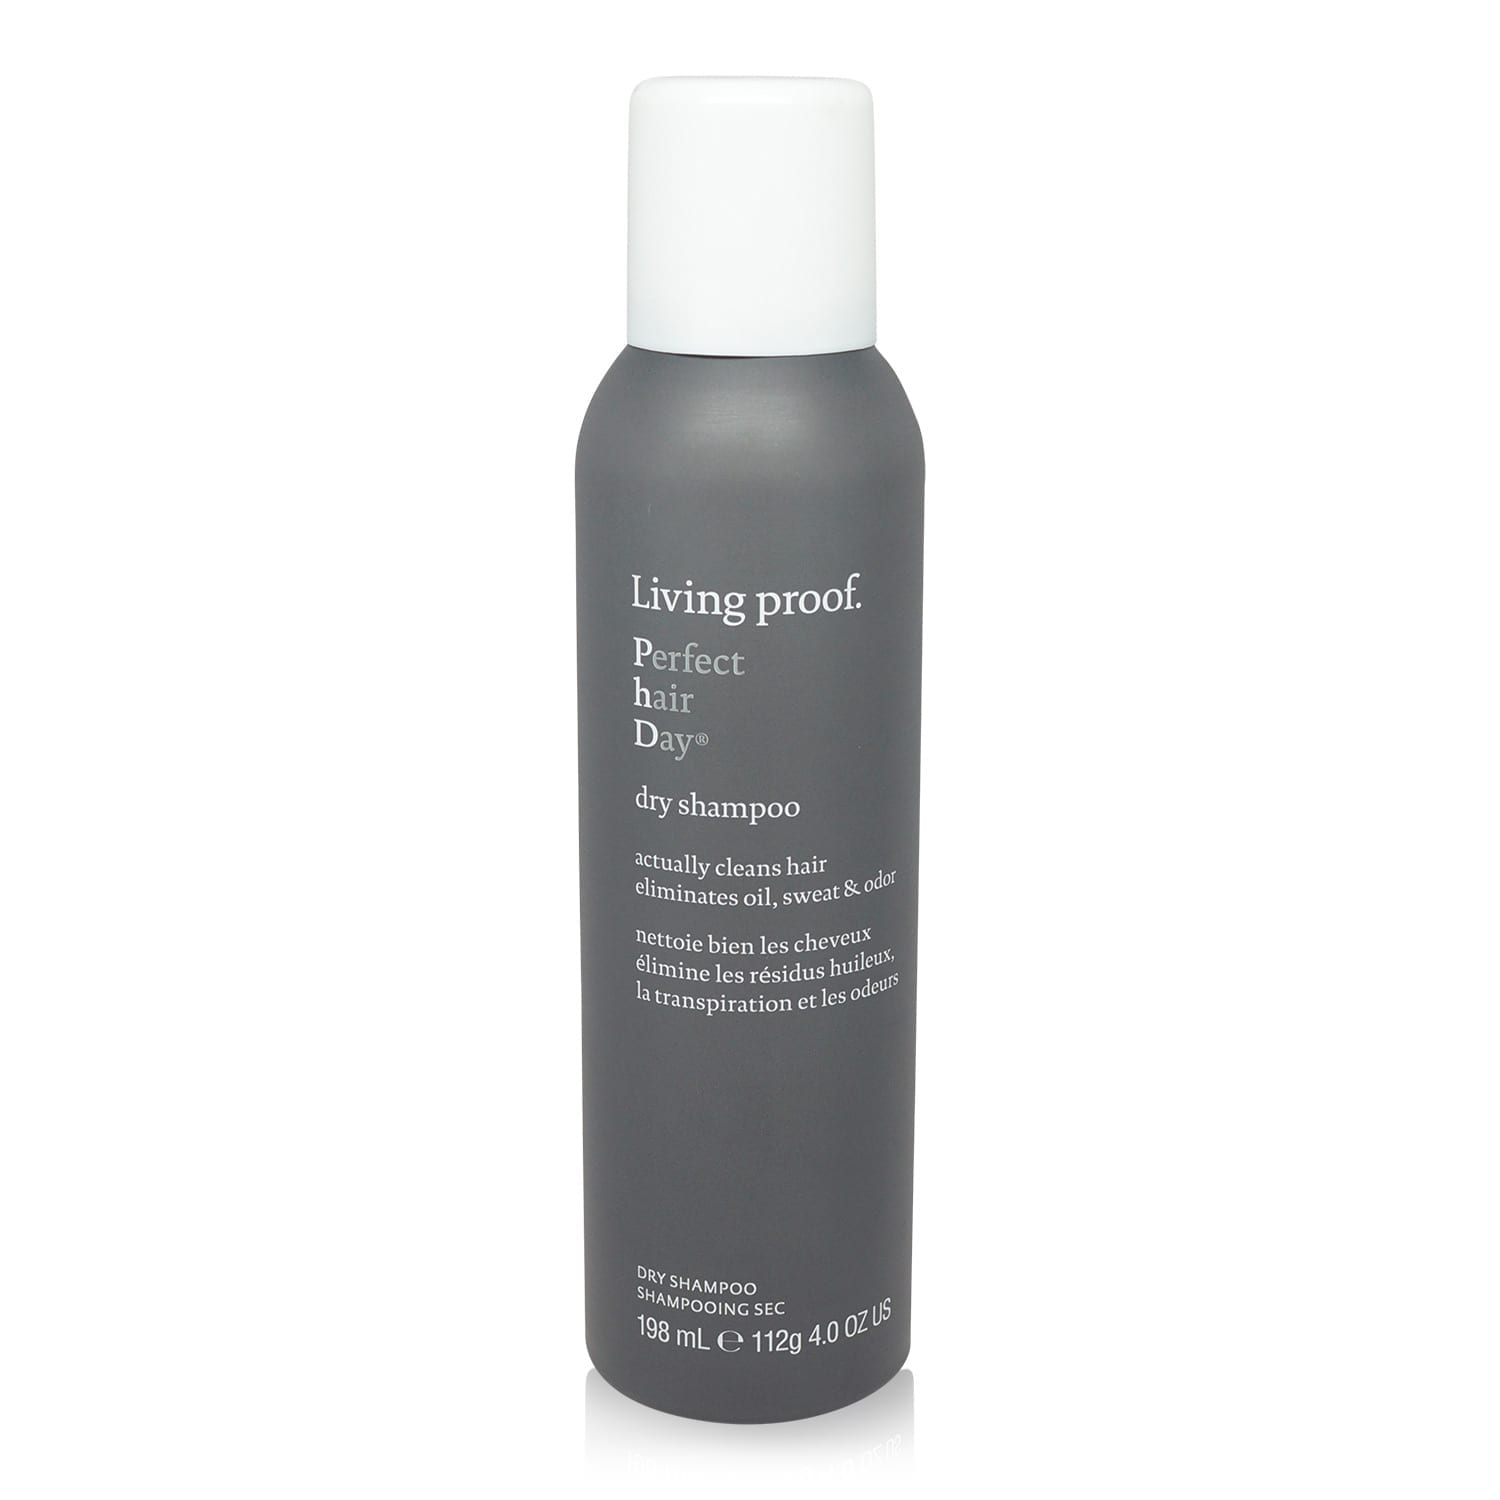 Living Proof Perfect Hair Day Dry Shampoo 4 oz.